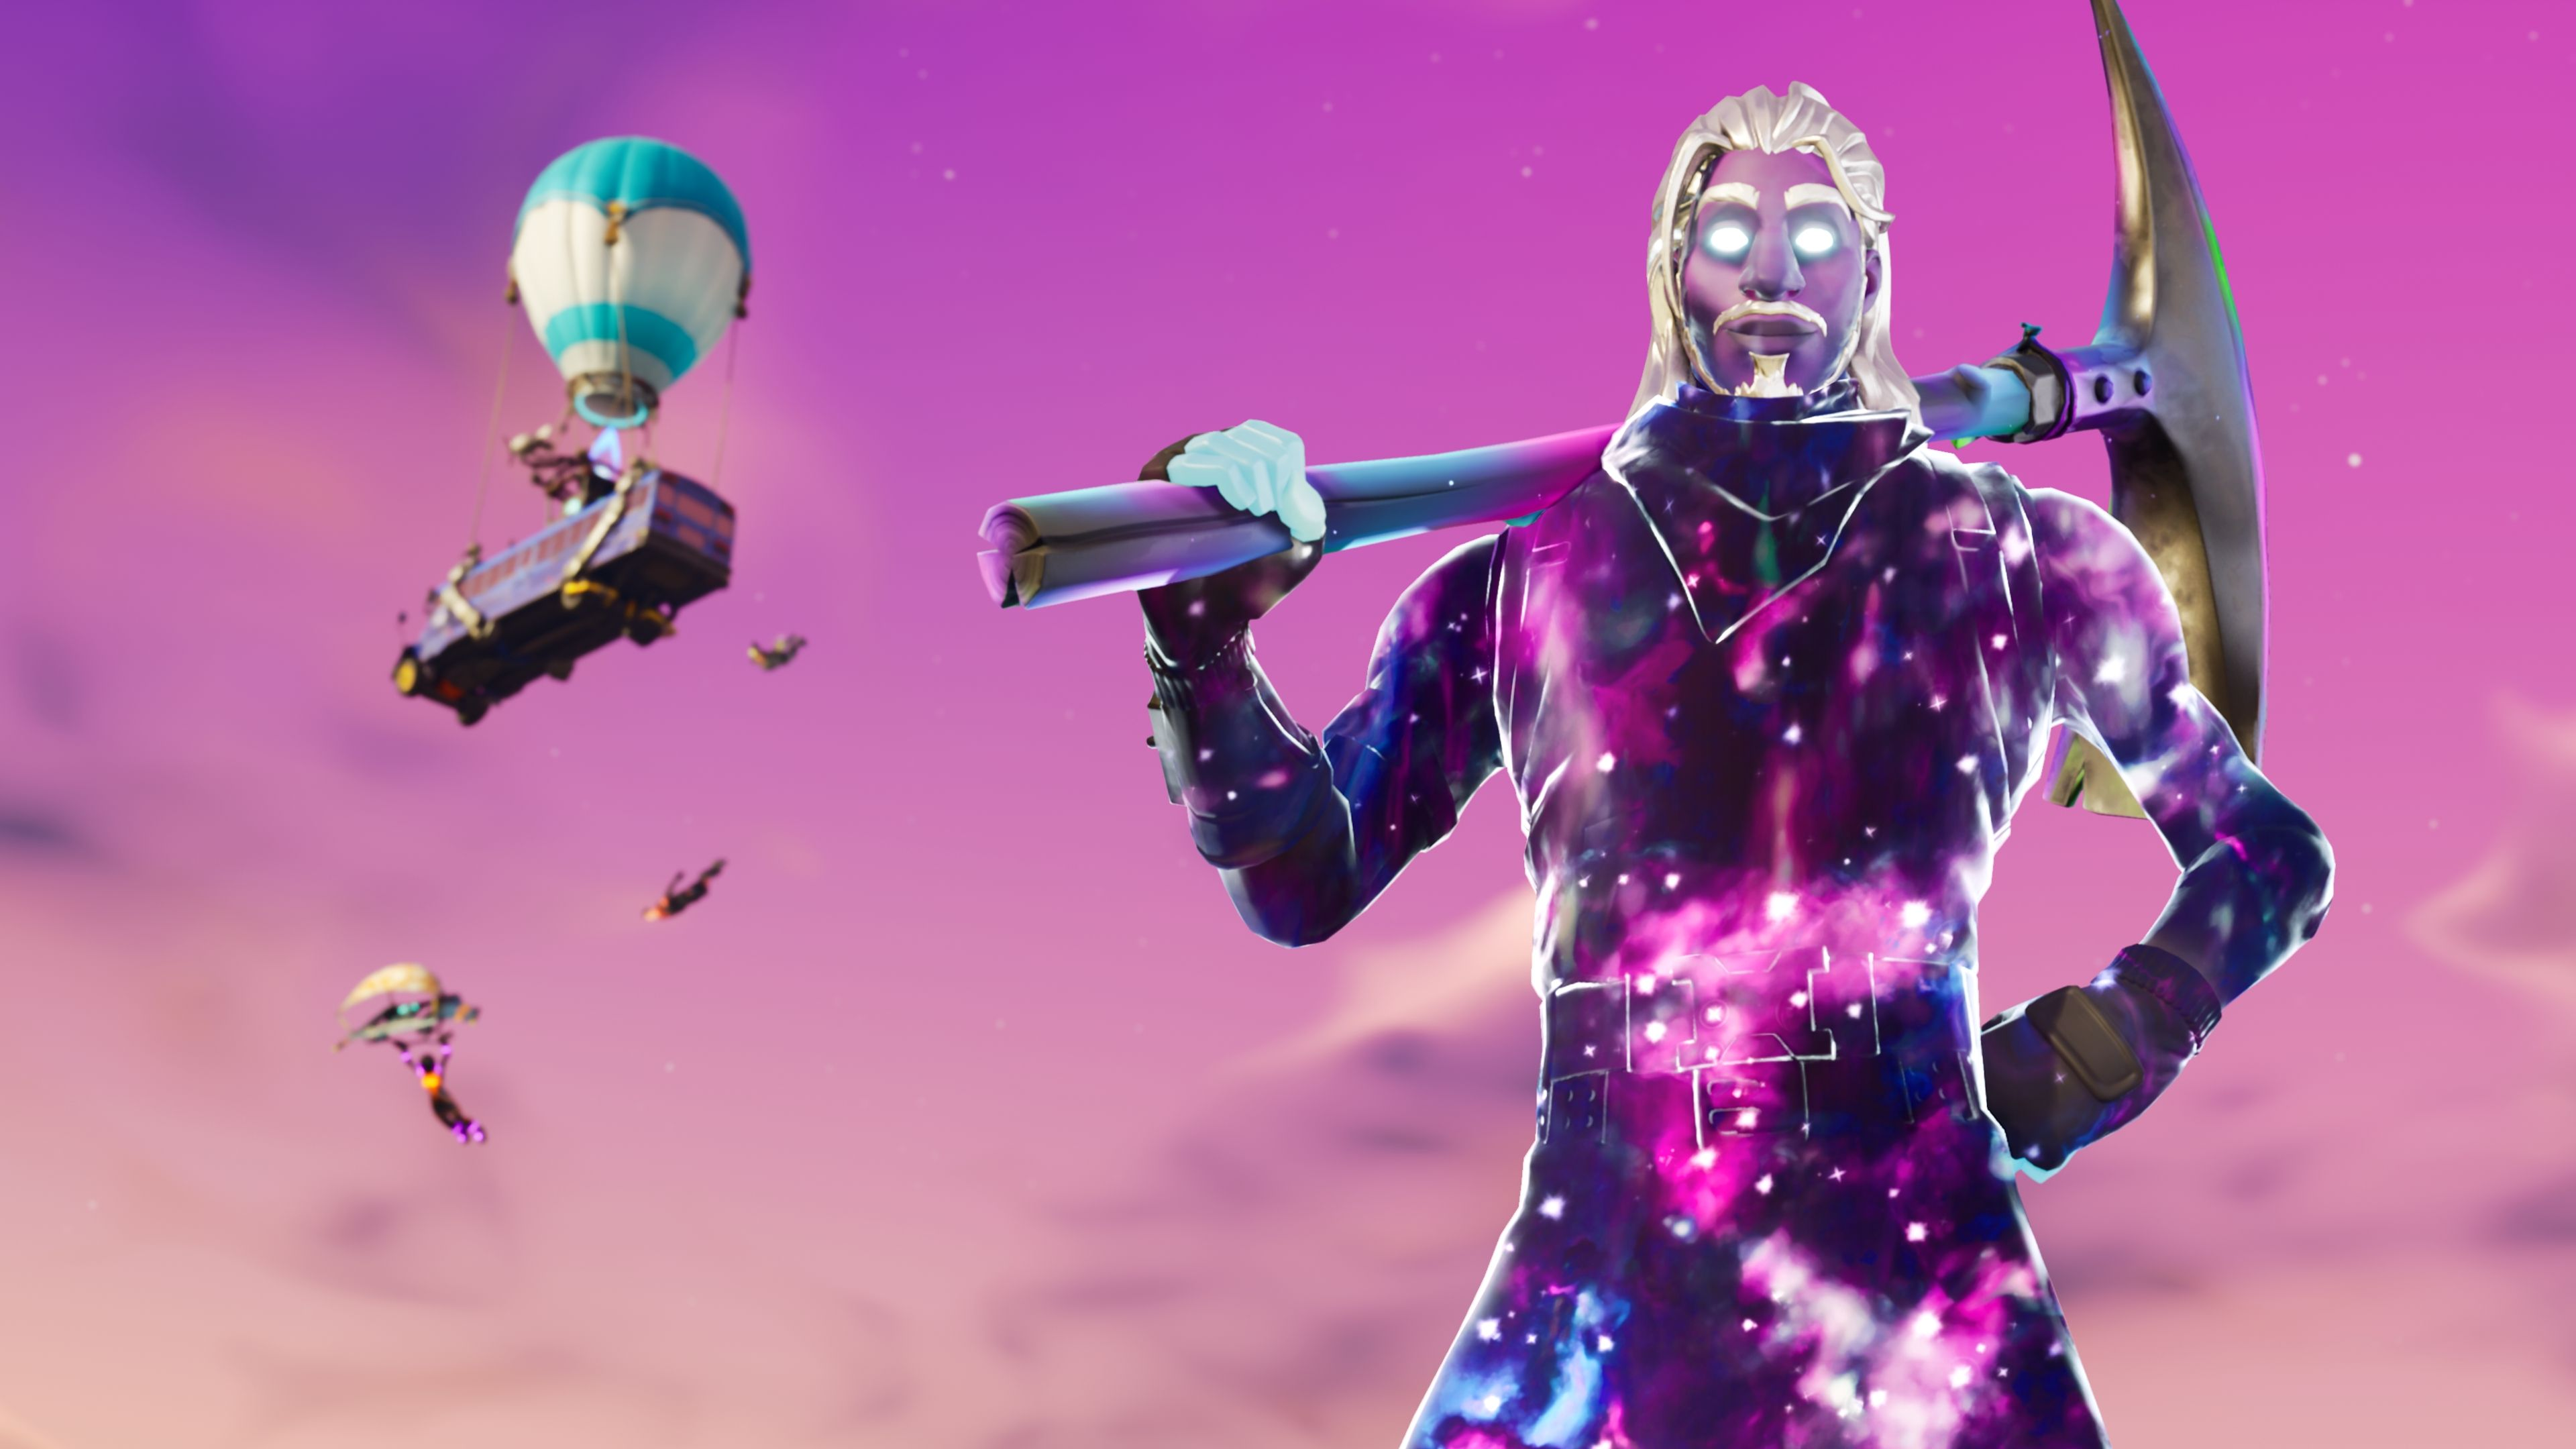 Galaxy Man Fortnite Season 6 4k Ps Games Wallpapers Hd Wallpapers Games Wallpapers Fortnite Wallpapers Fortni Fortnite Galaxy Wallpaper Epic Games Fortnite